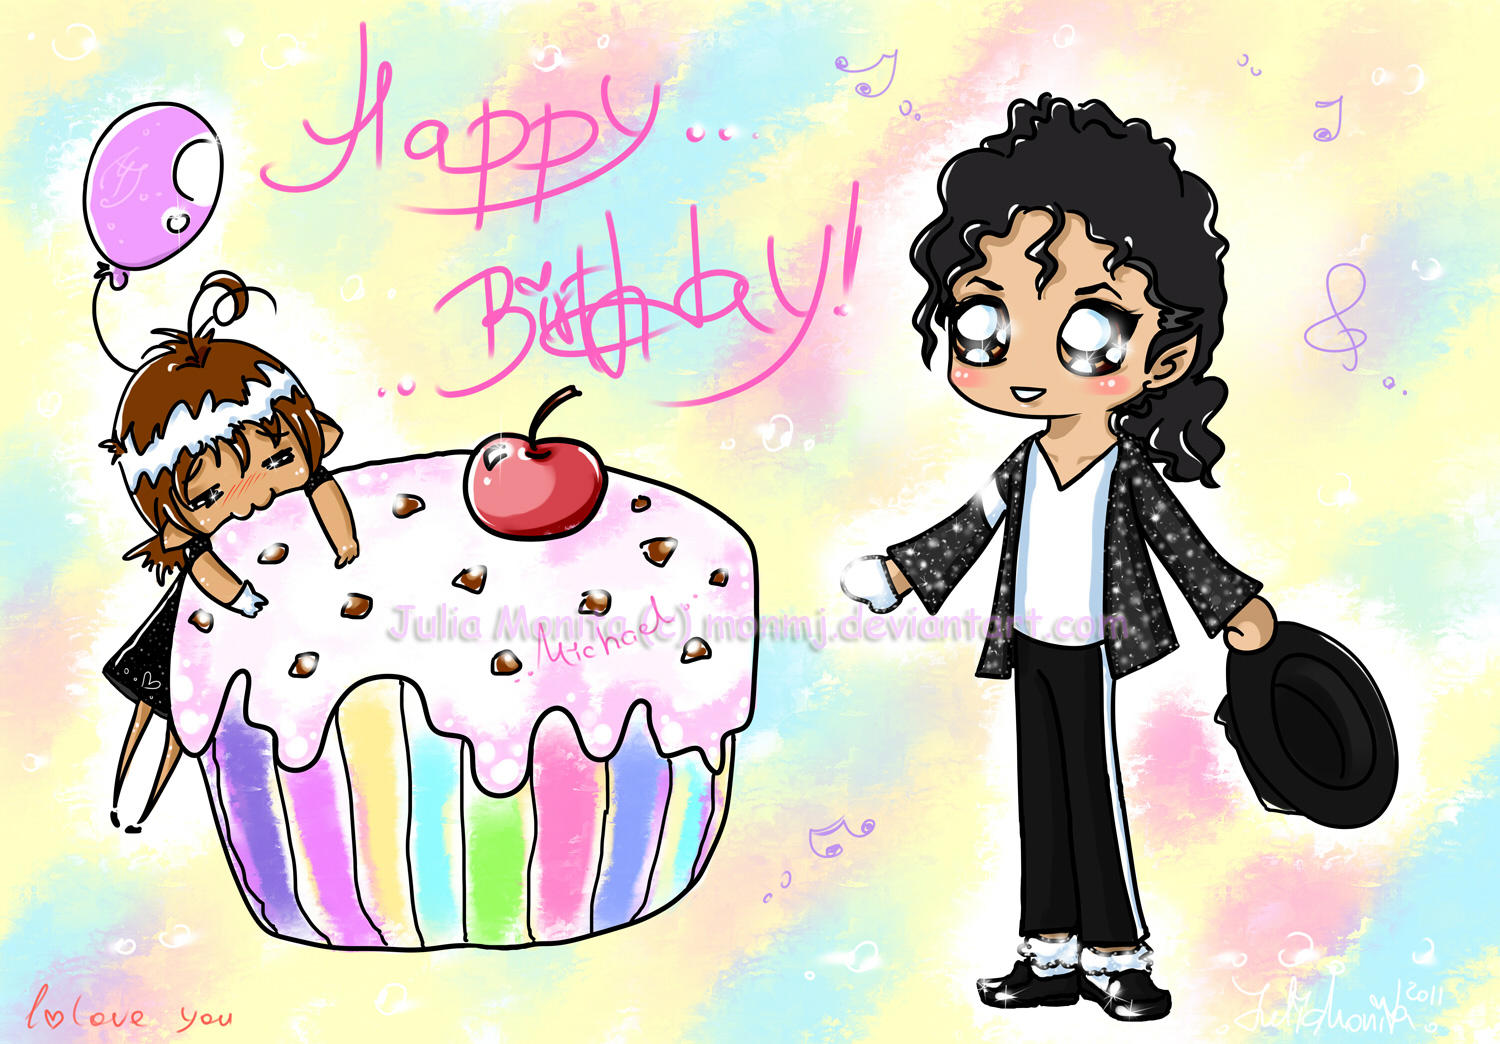 Happy Birthday dear Michael by MonMJ